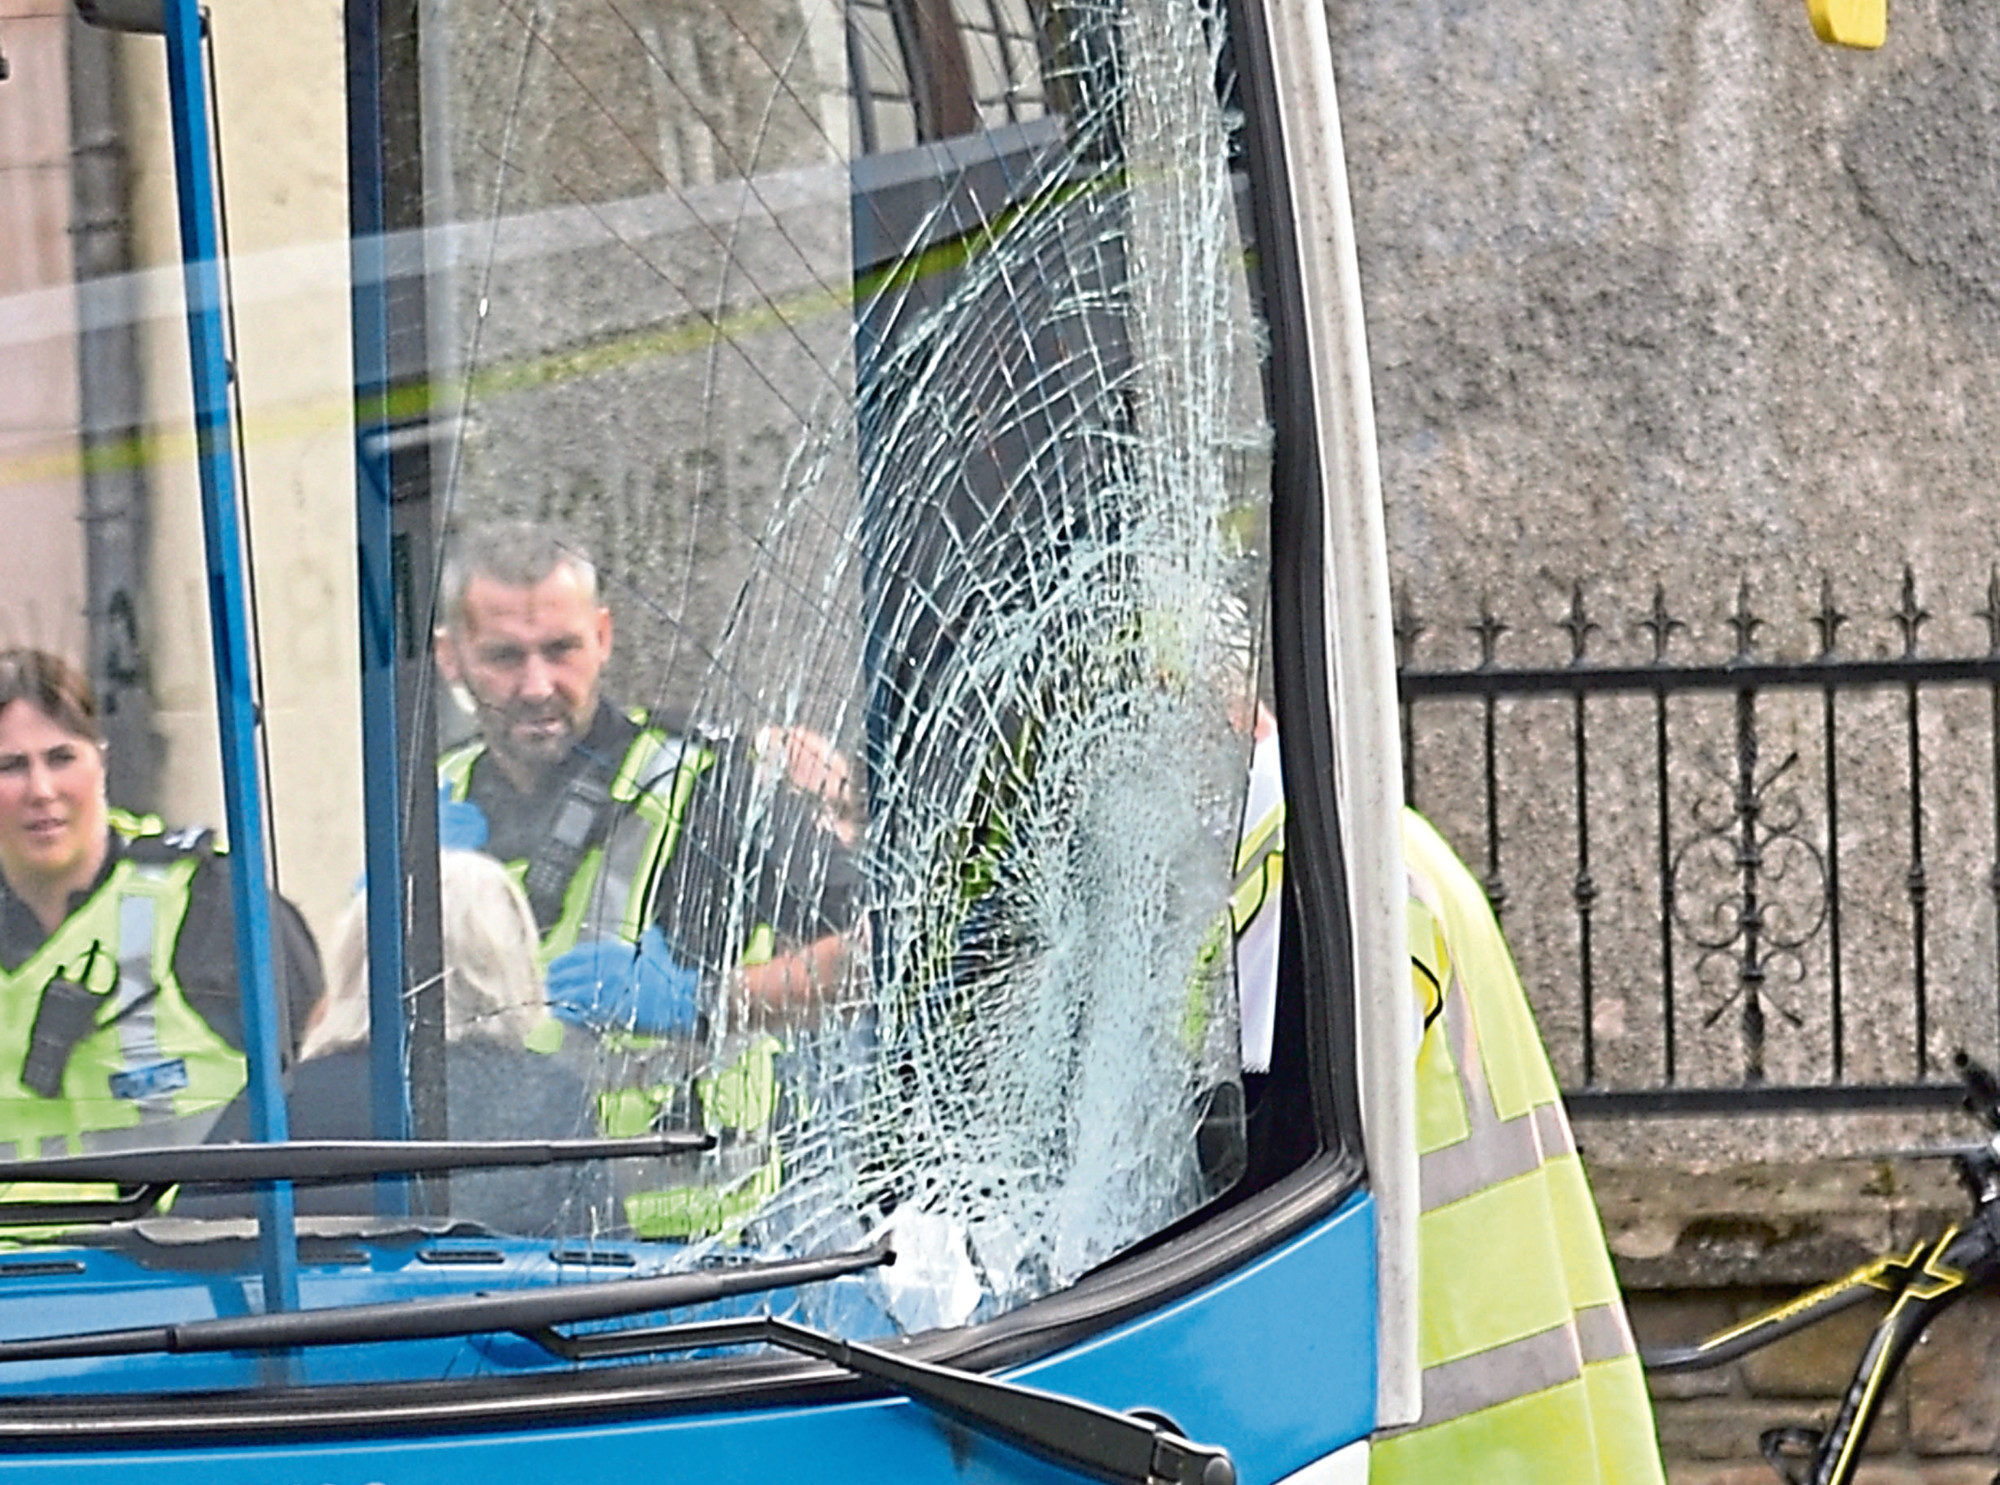 Scene of the bus accident in Perth